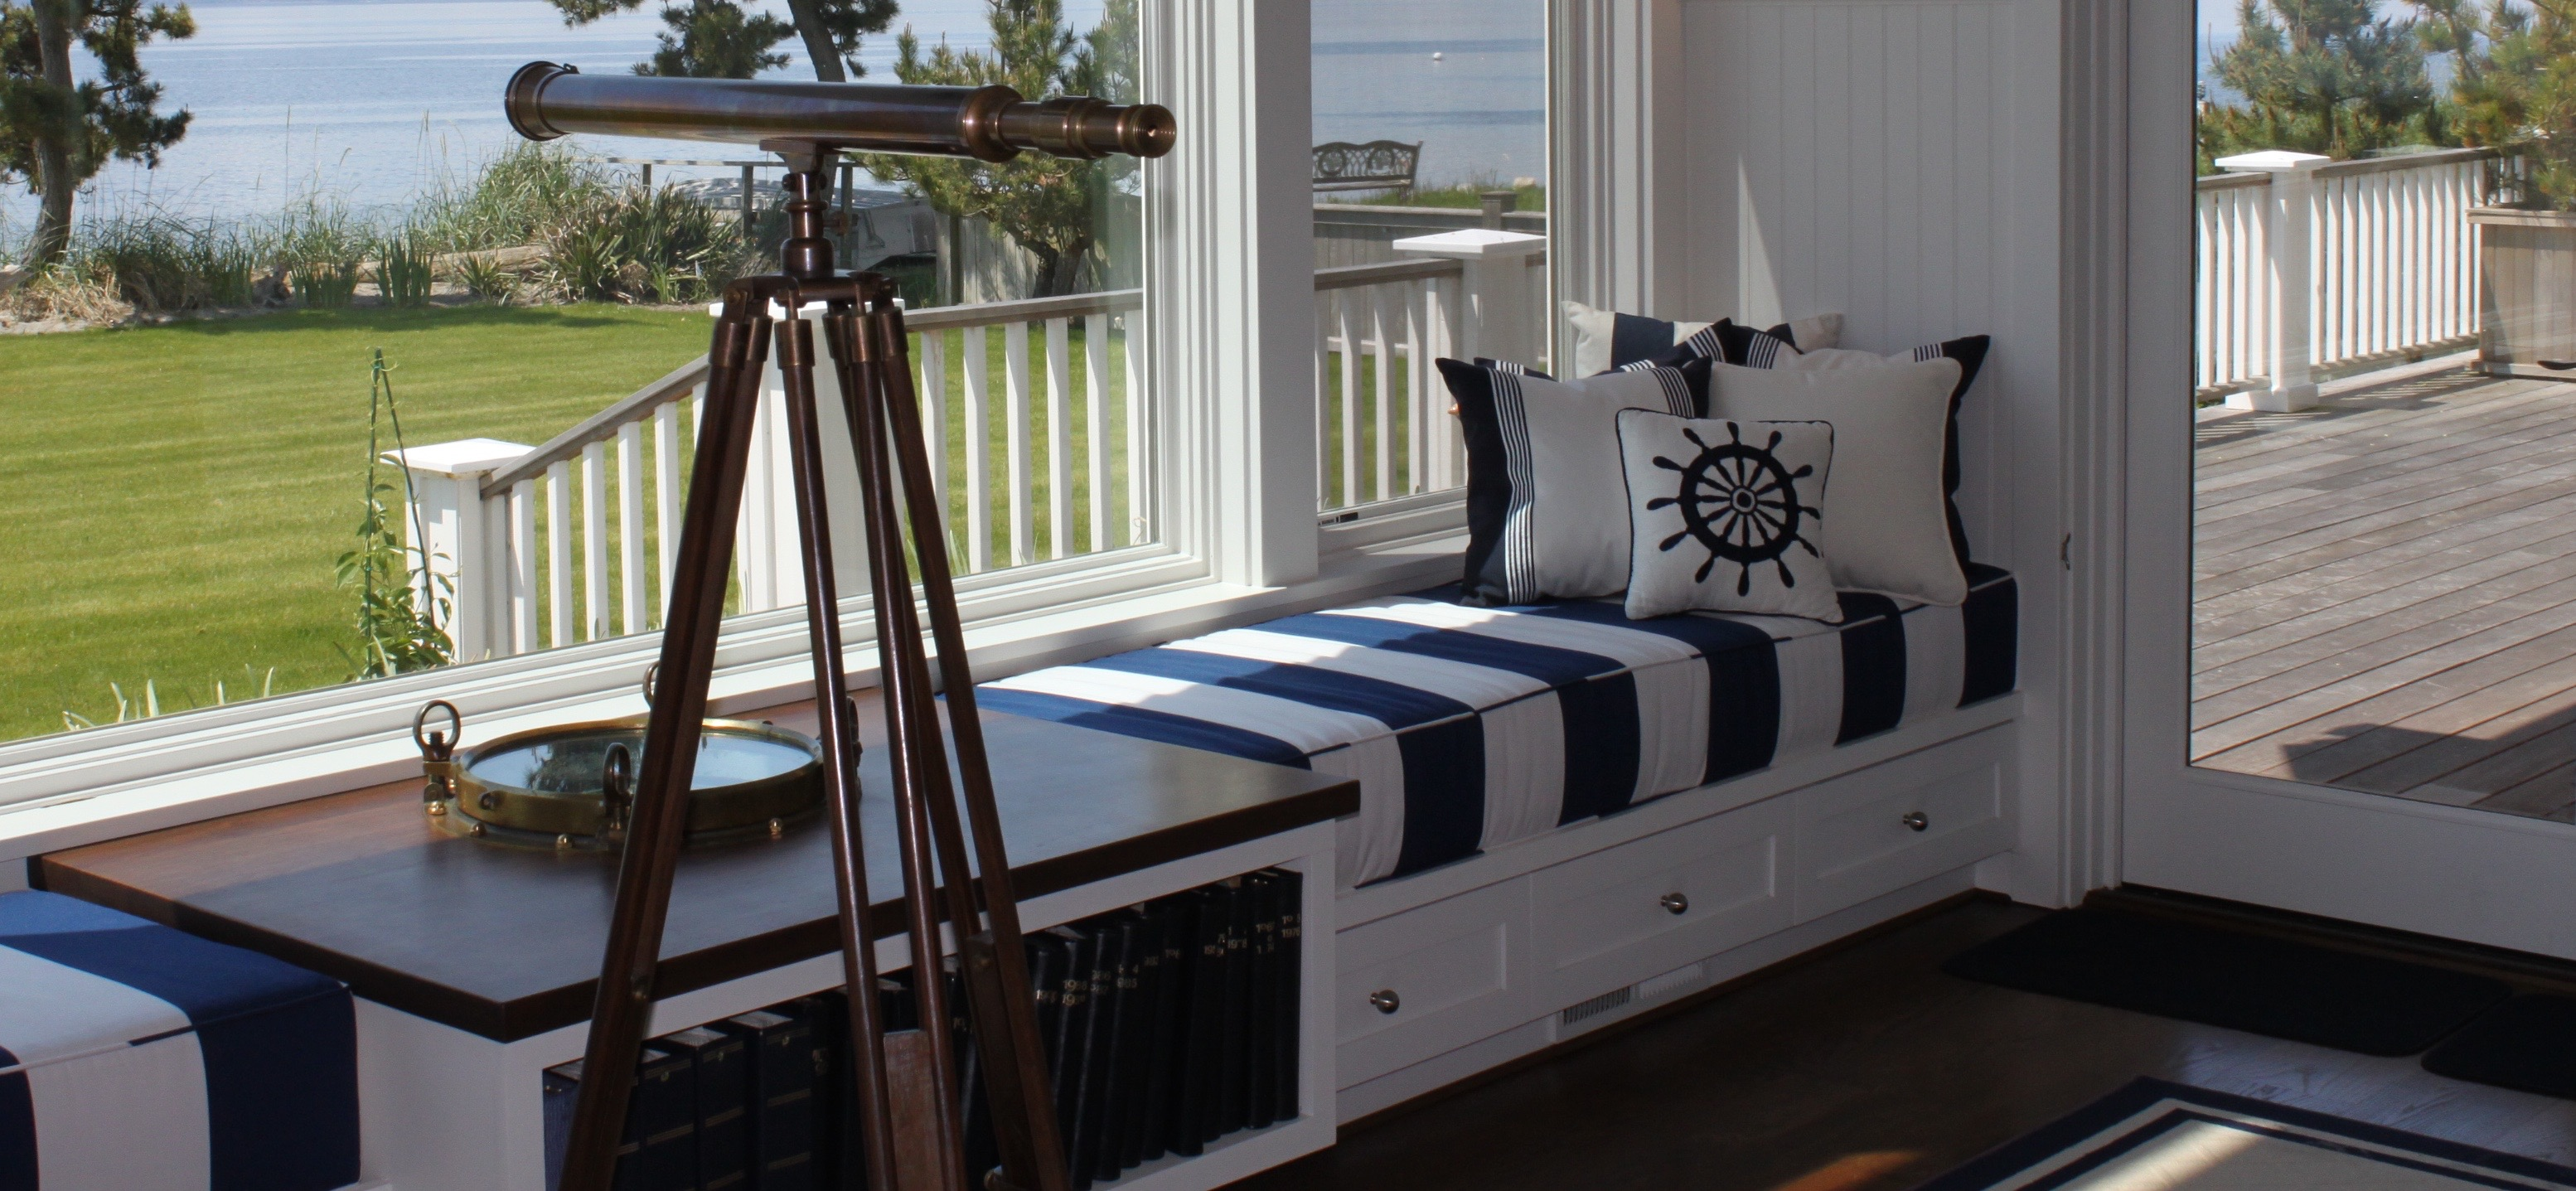 5 interior design decorating tips for a nautical theme. Black Bedroom Furniture Sets. Home Design Ideas